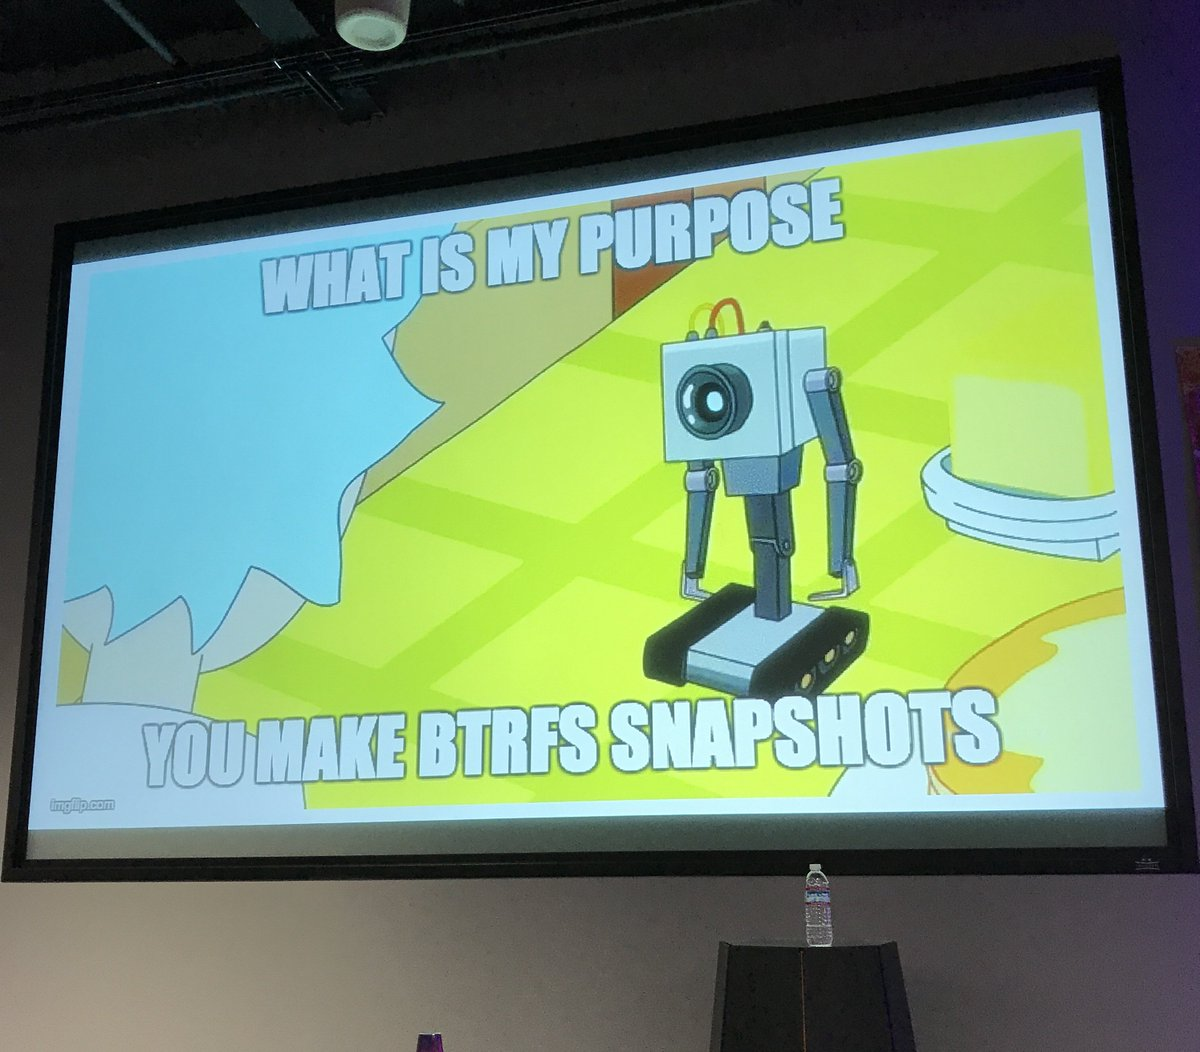 RT @bd: any presentation with a rick and morty reference immediately doubles its legitimacy credits with me. https://t.co/rC07w8J6UB